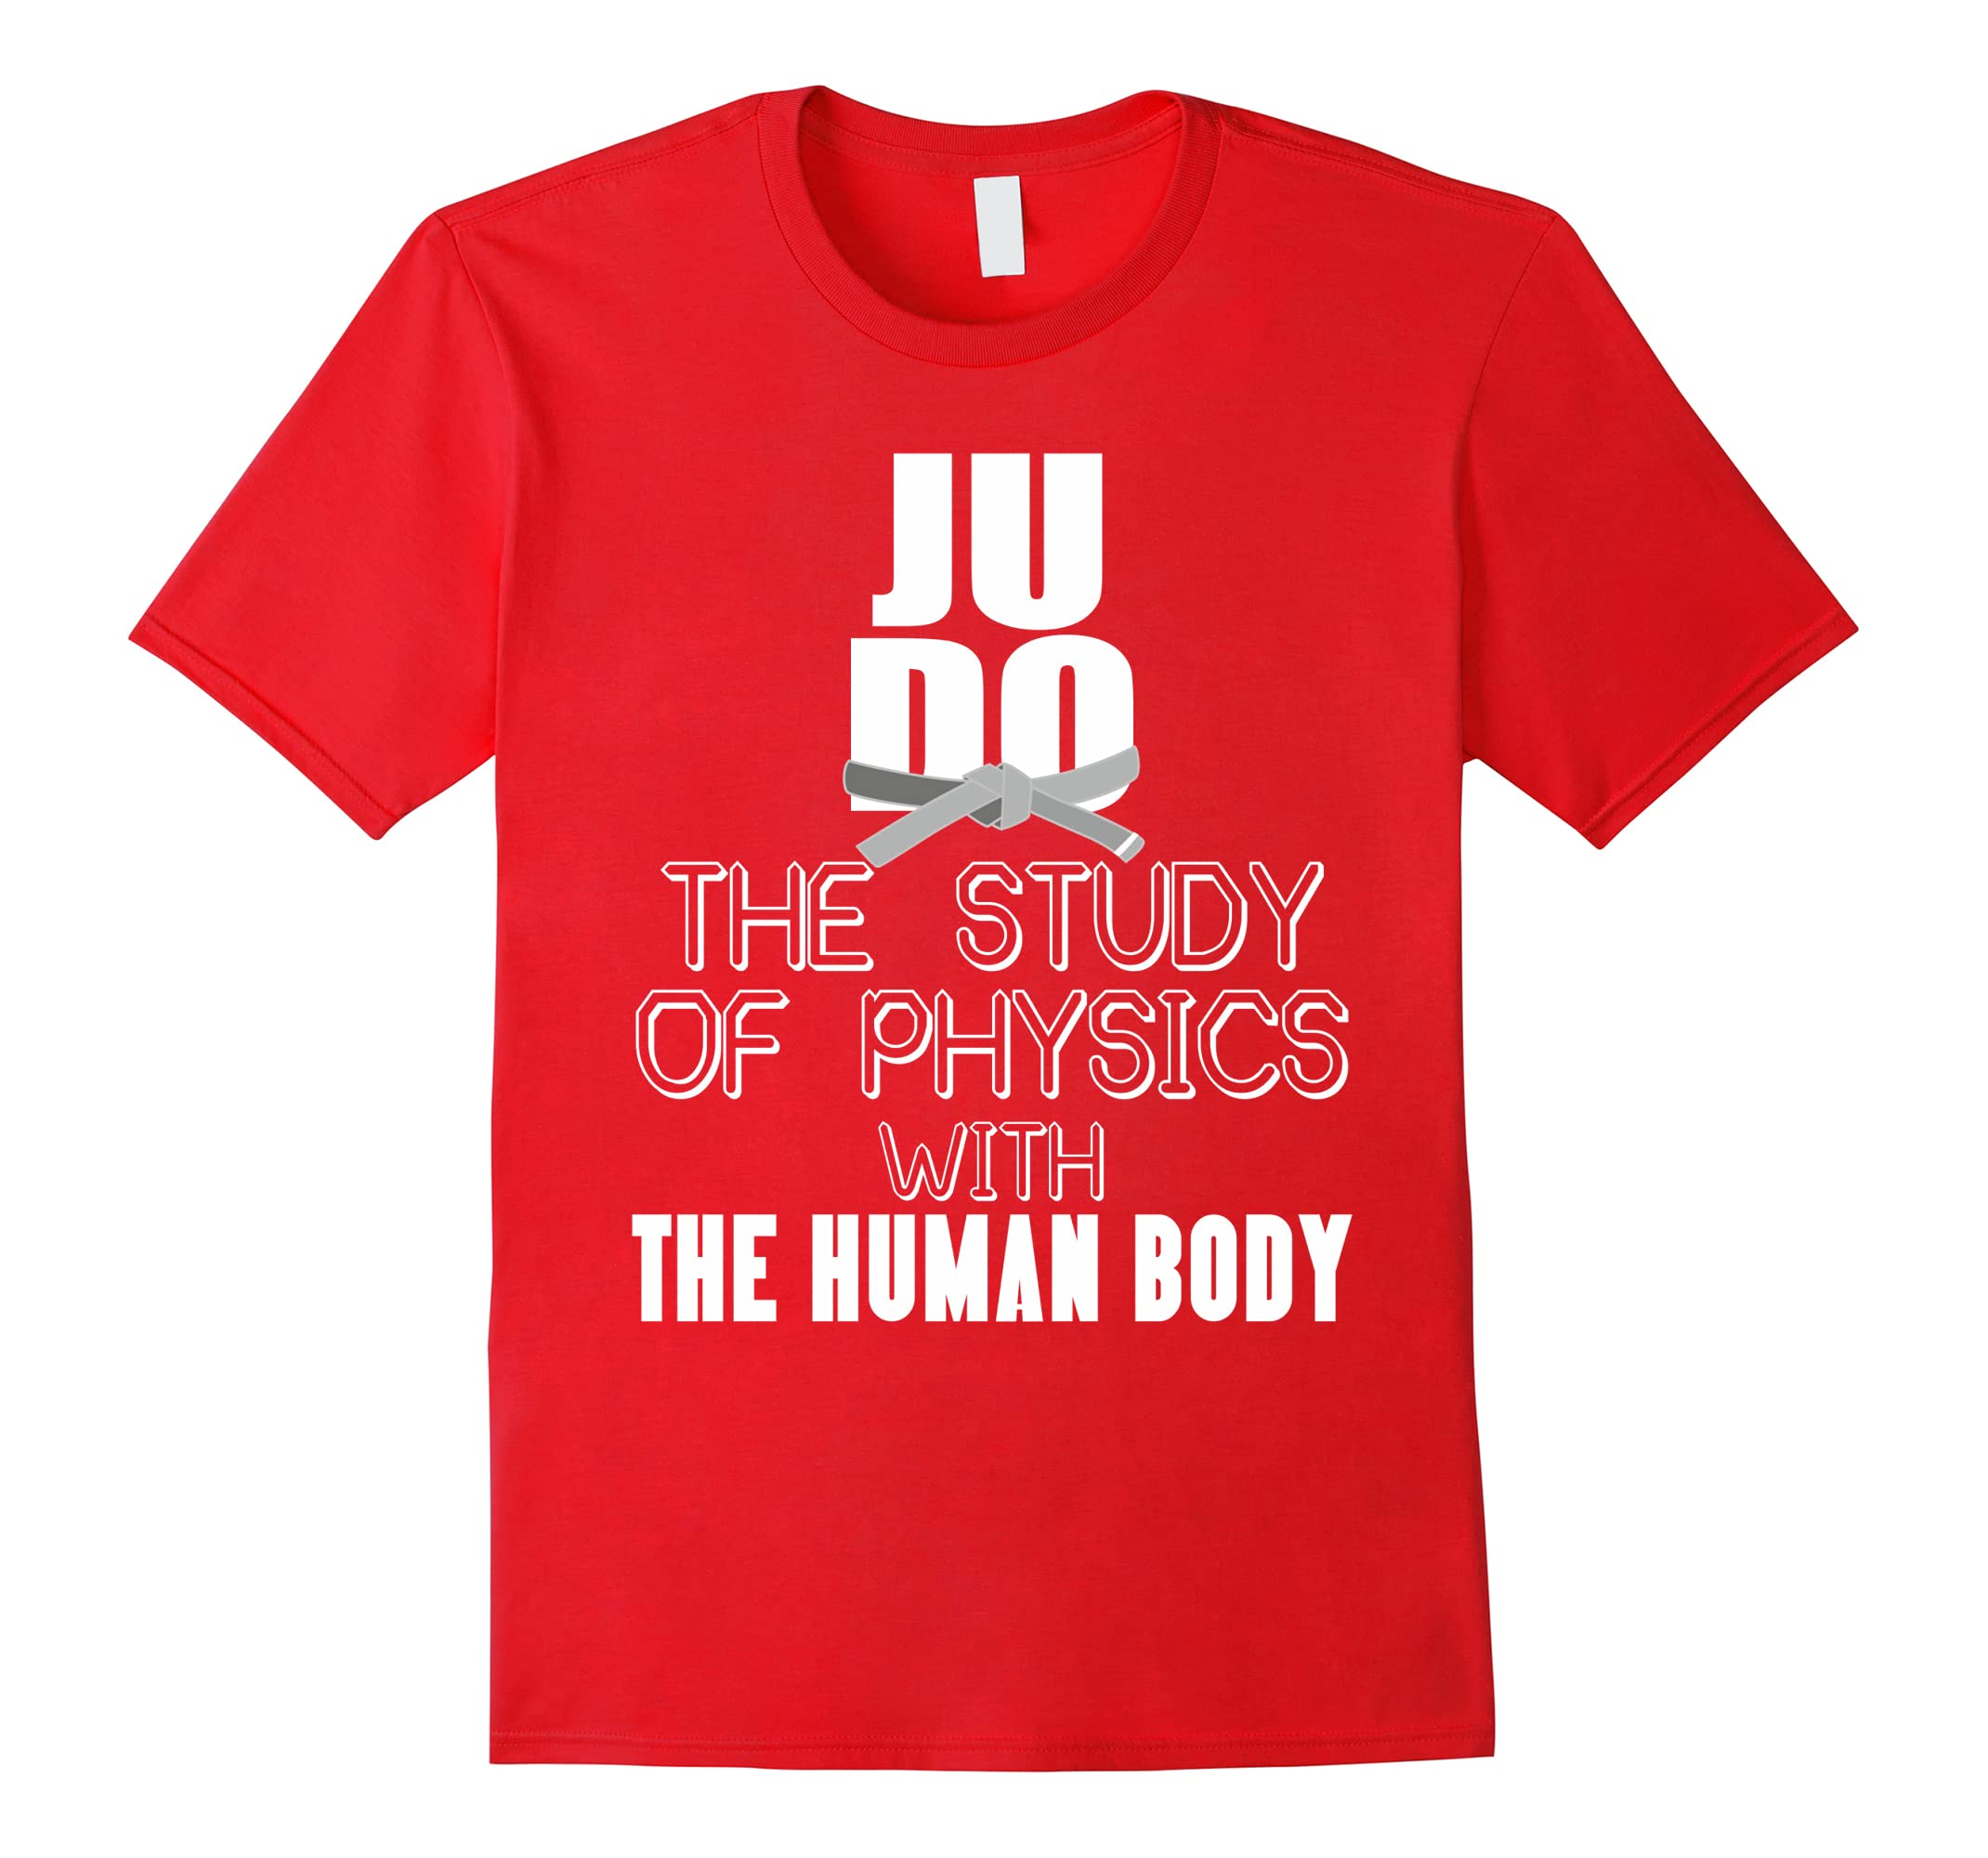 Judo T Shirt The Study Of Physics With The Human Body Rt Rateeshirt